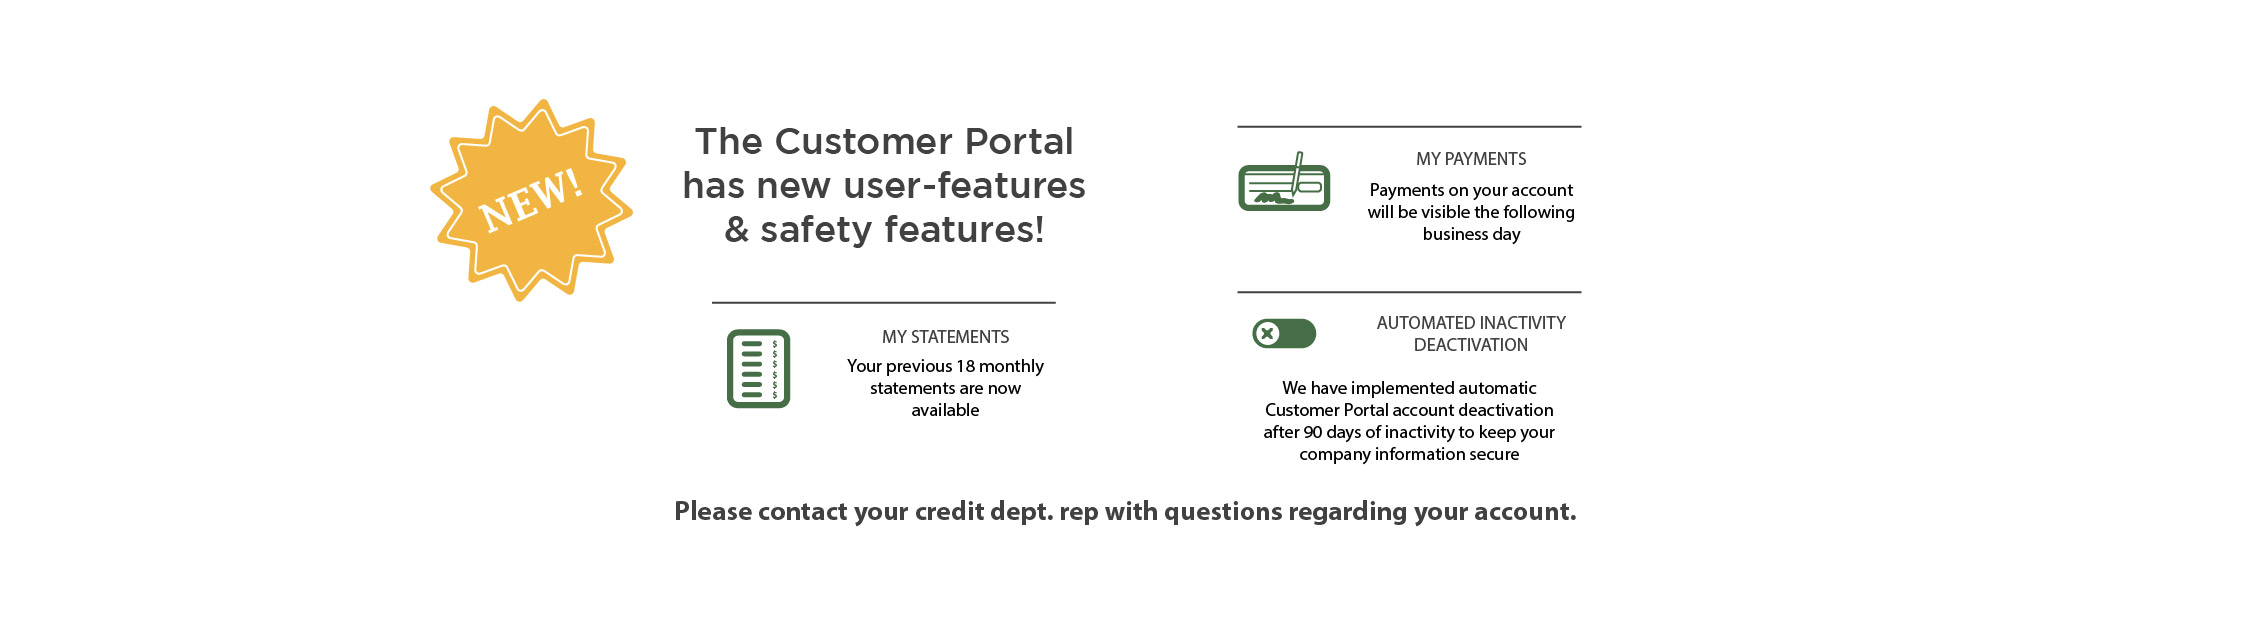 Customer Portal New Features